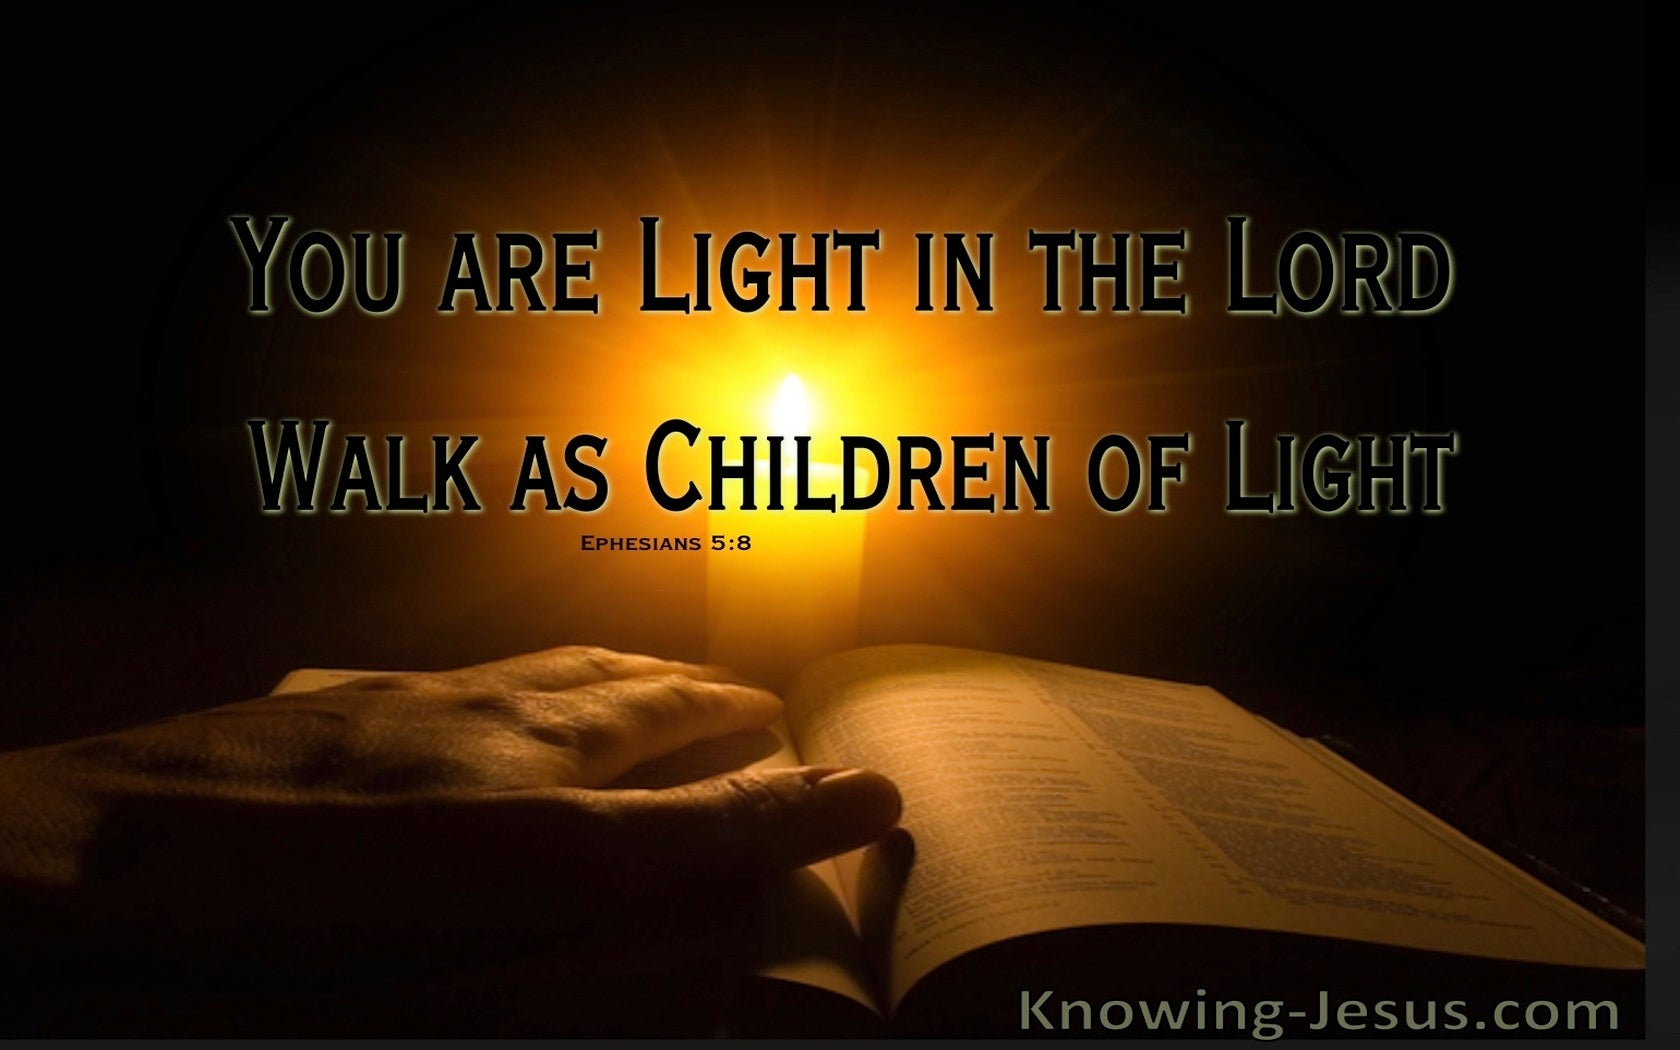 Ephesians 5:8 God, My Light (devotional)03:09 (brown)